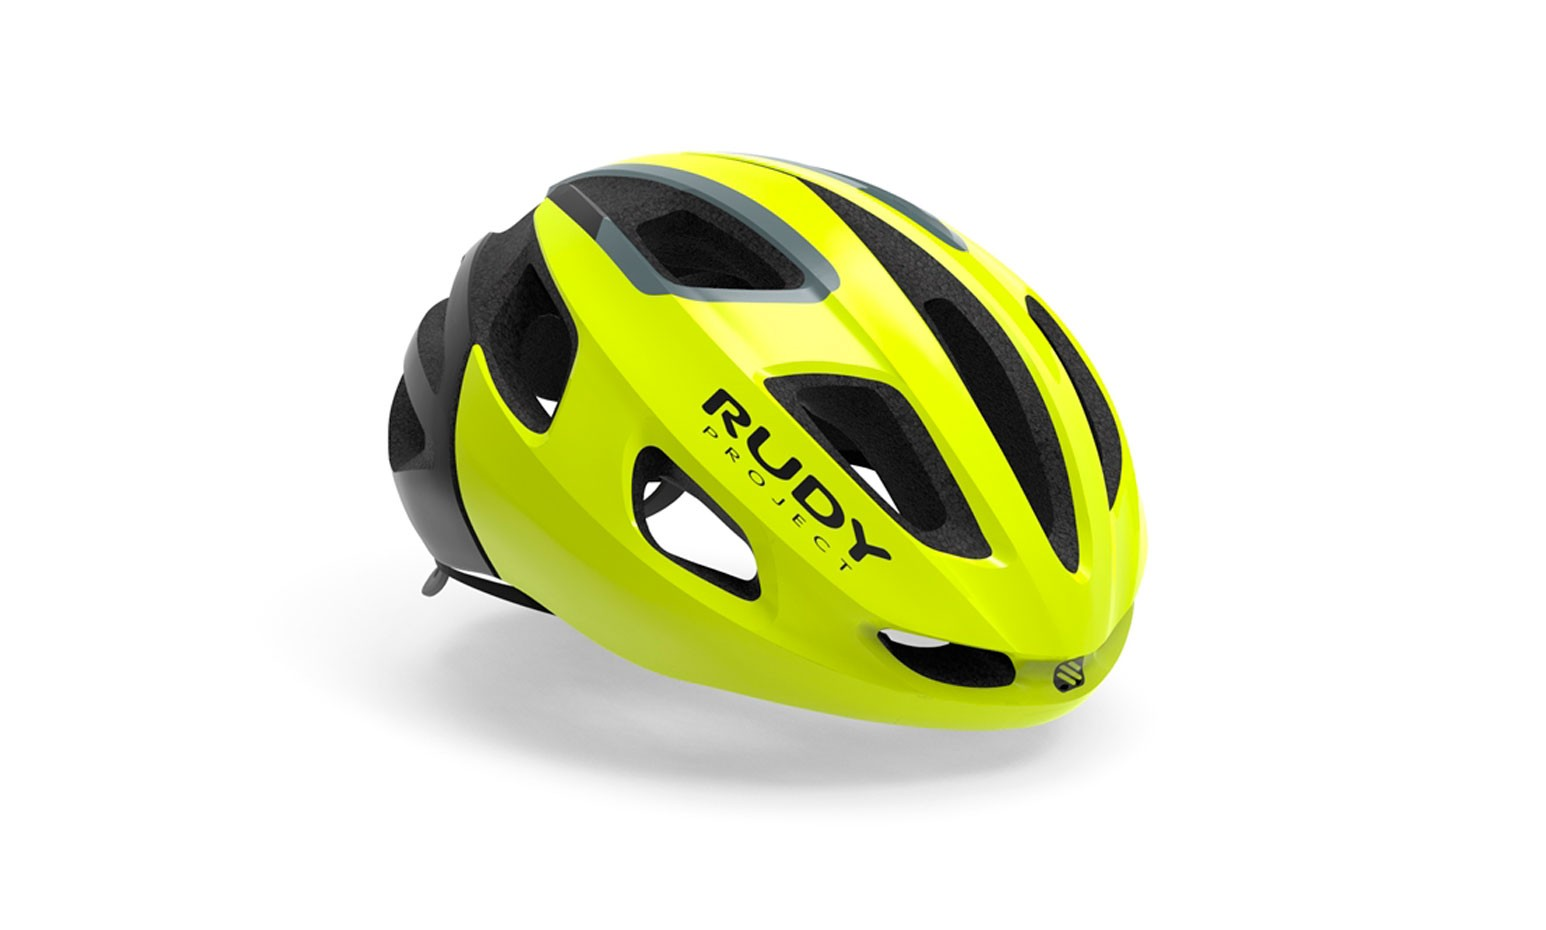 Capacete Rudy Project Modelo Strym Yellow Fluo Shiny Tam (s/m)